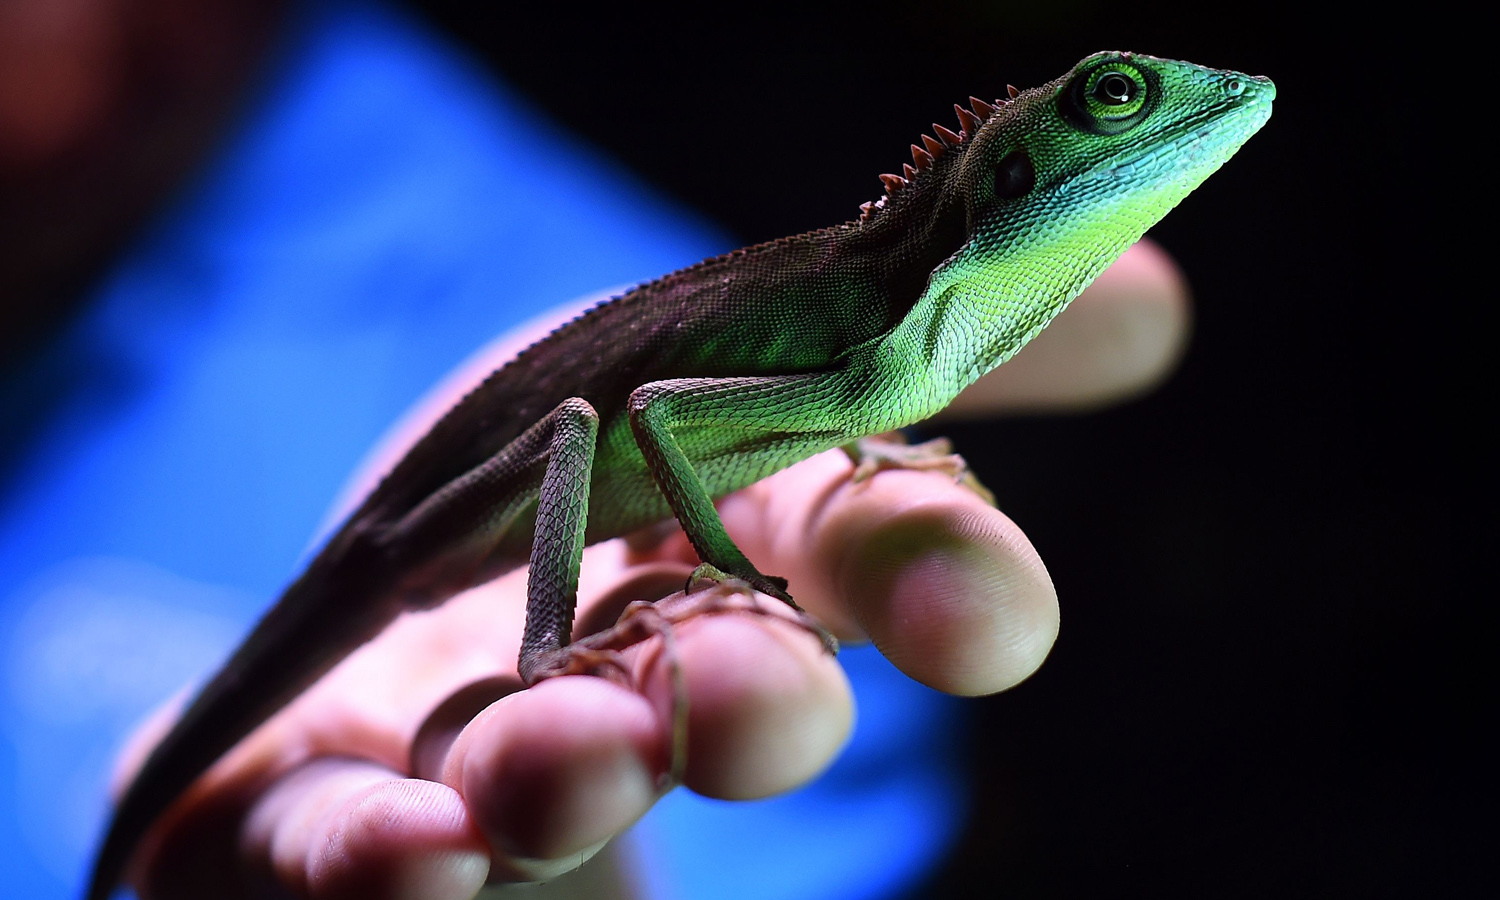 Iran accuses West of using lizards for nuclear spying